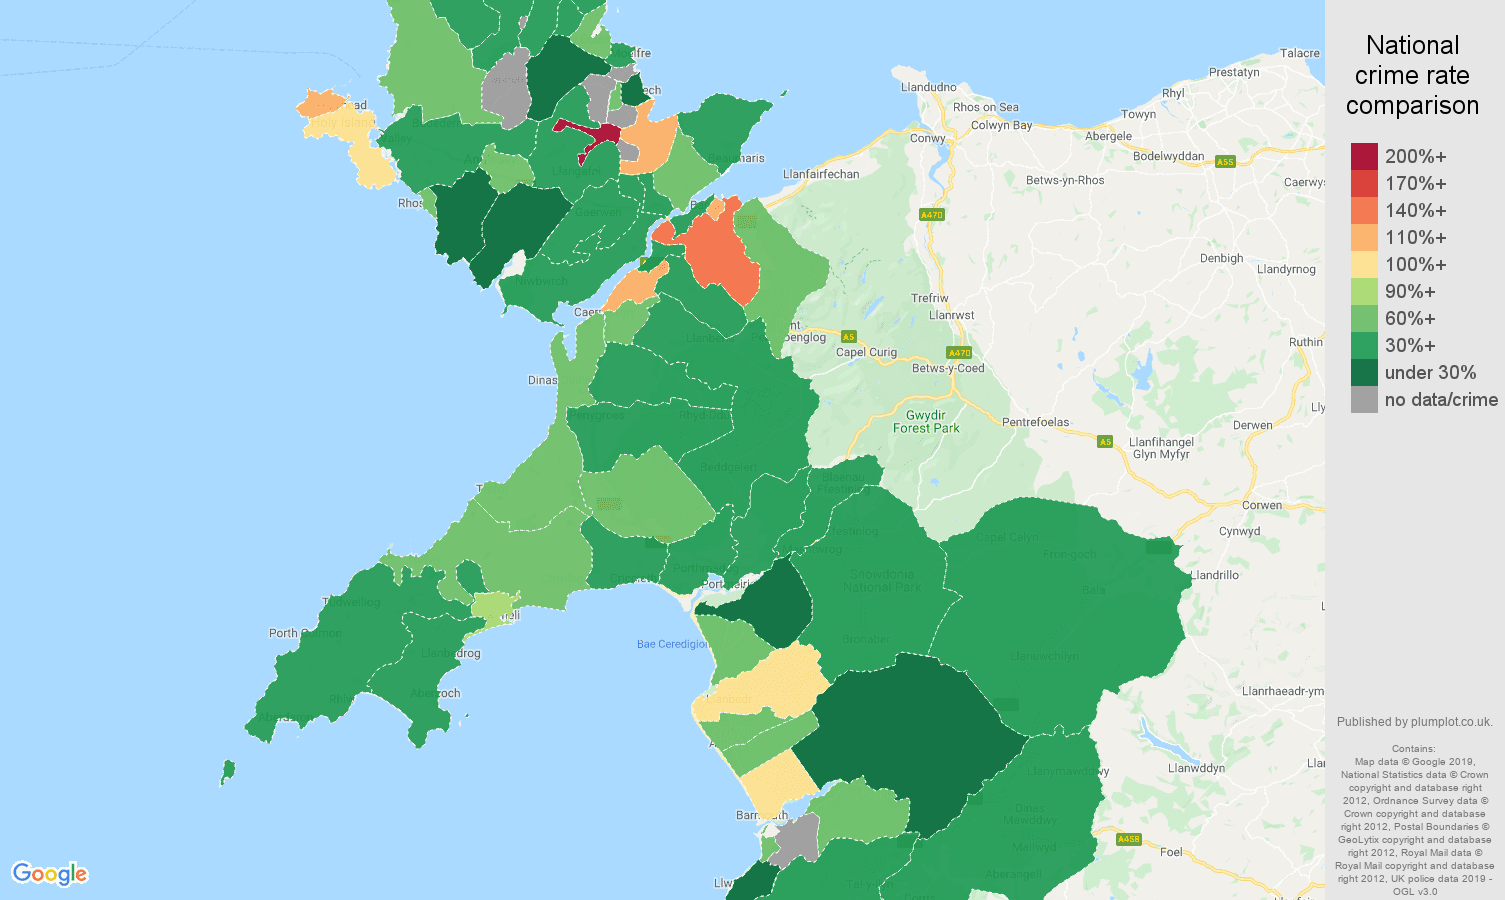 Gwynedd other theft crime rate comparison map